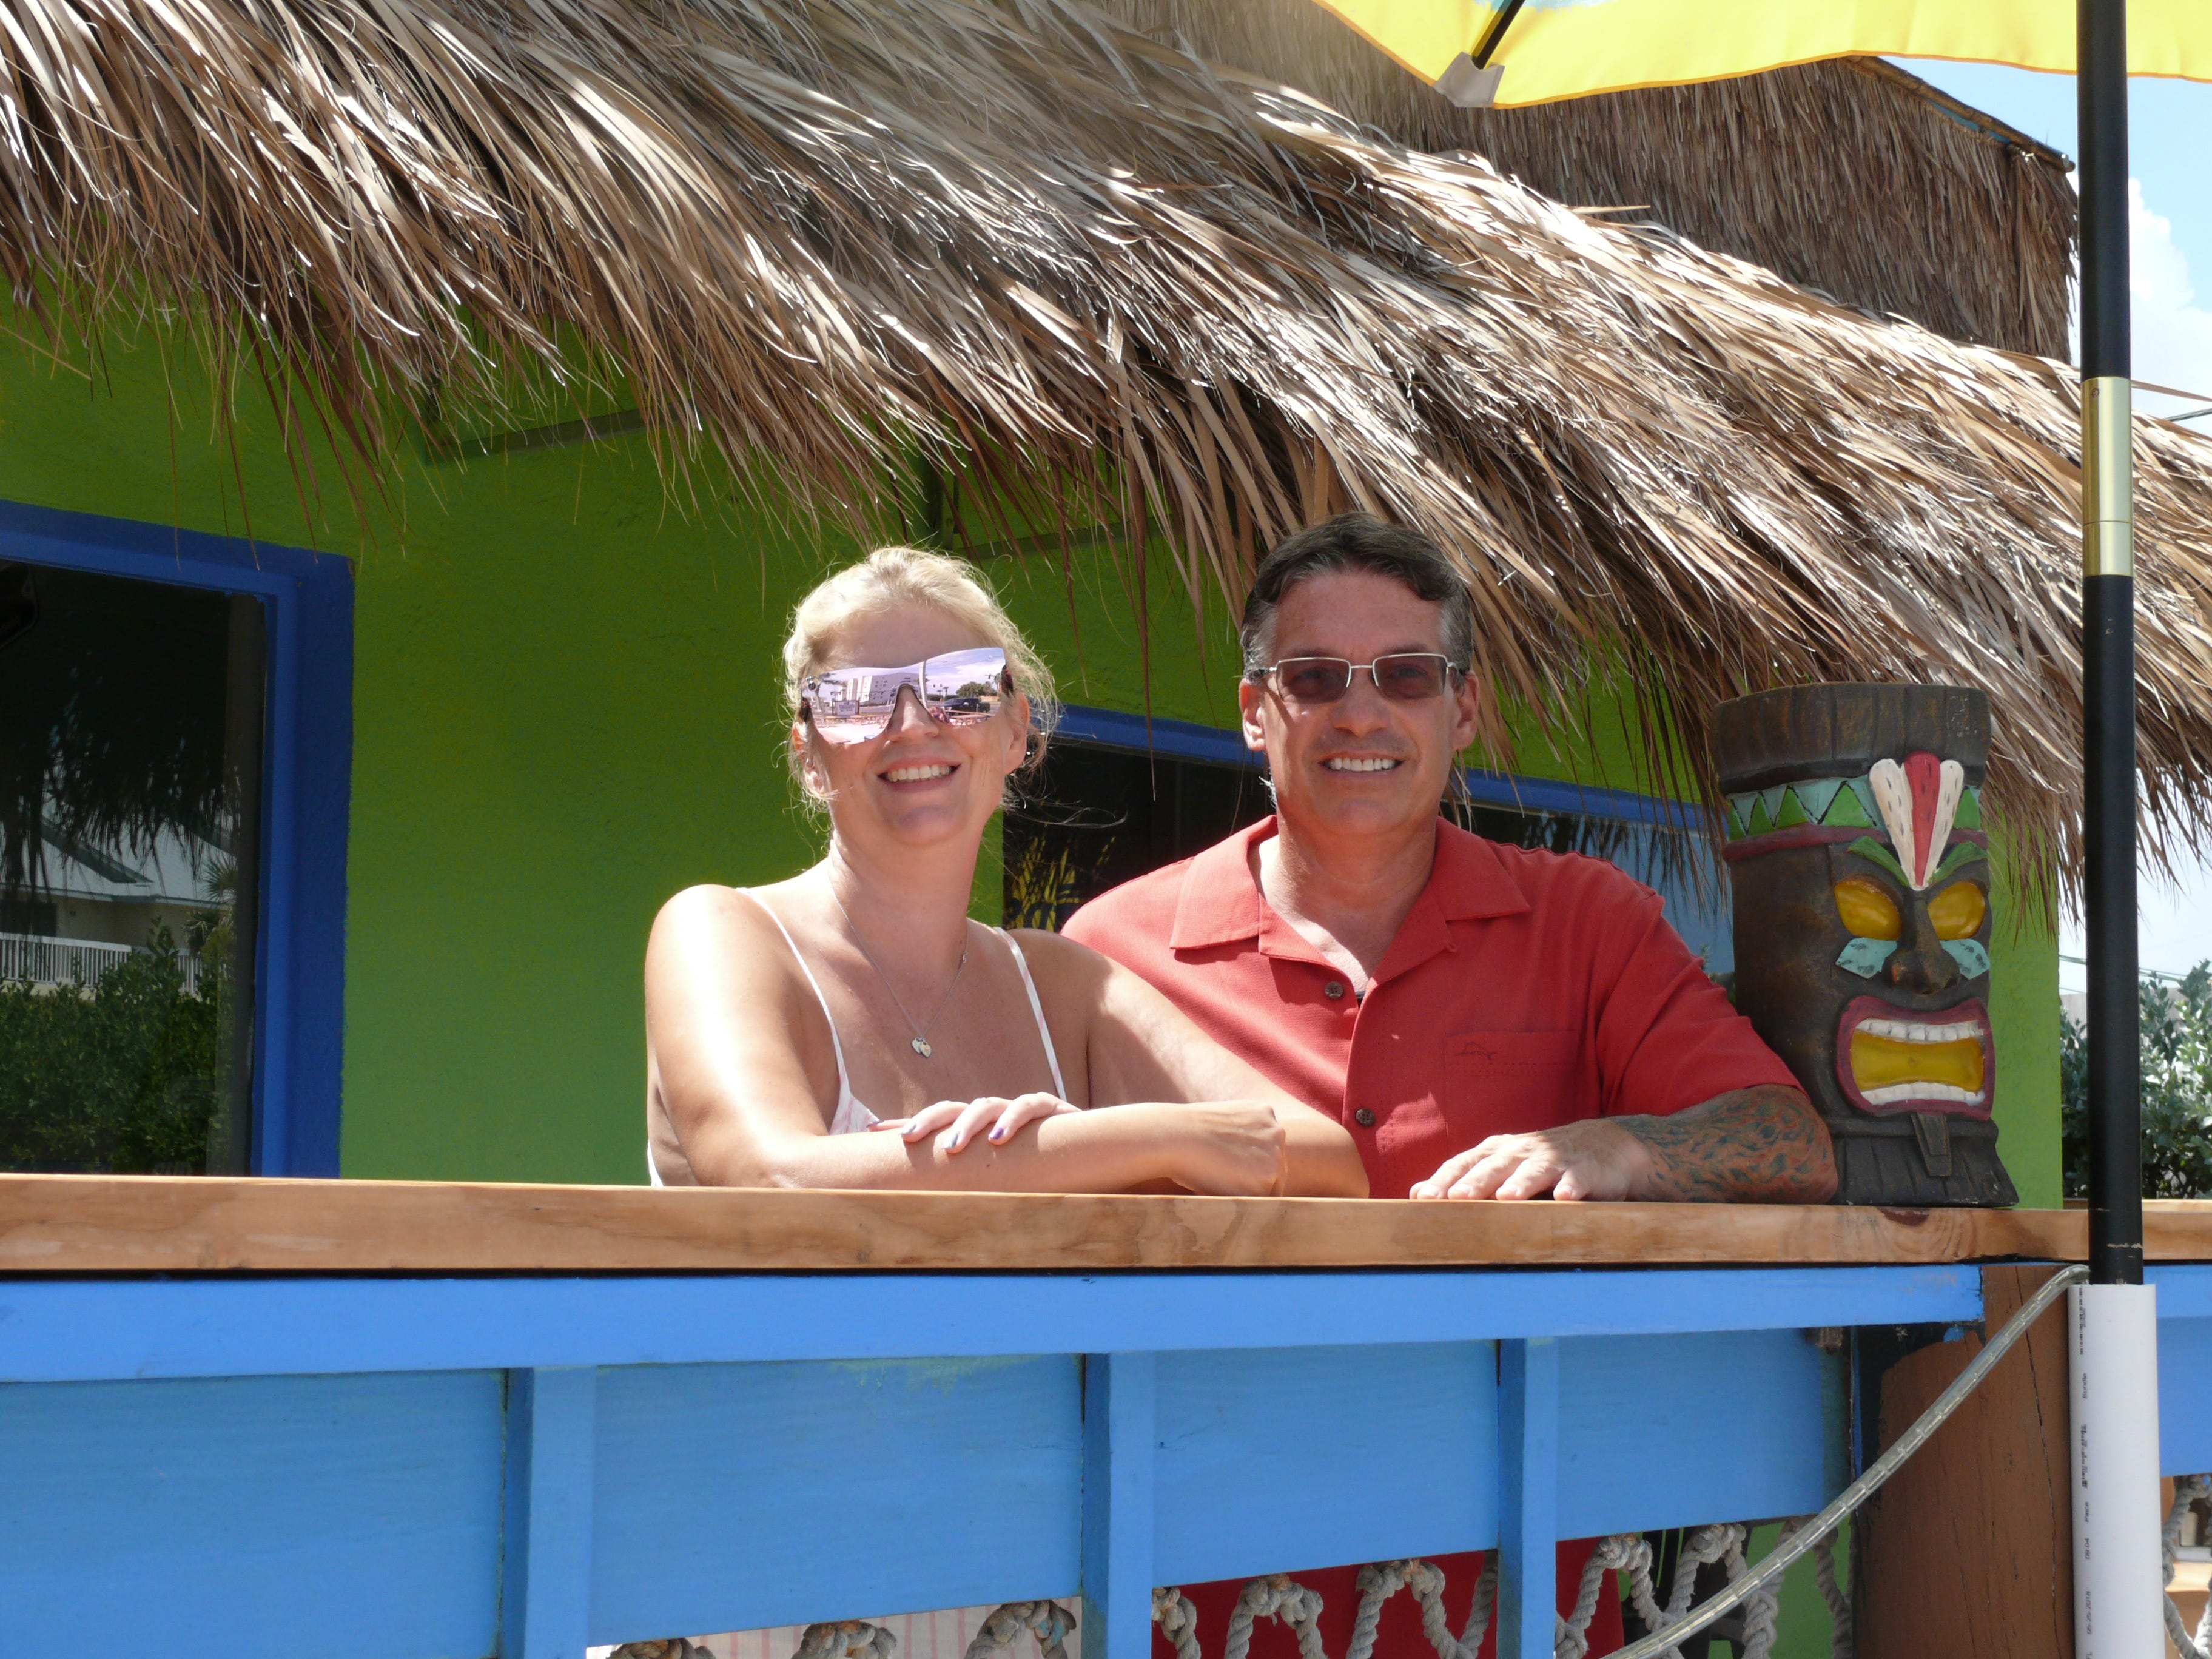 CLOSED: Kim and Jeffrey Leggee recently opened the beachy Shuck Shack in Satellite Beach.